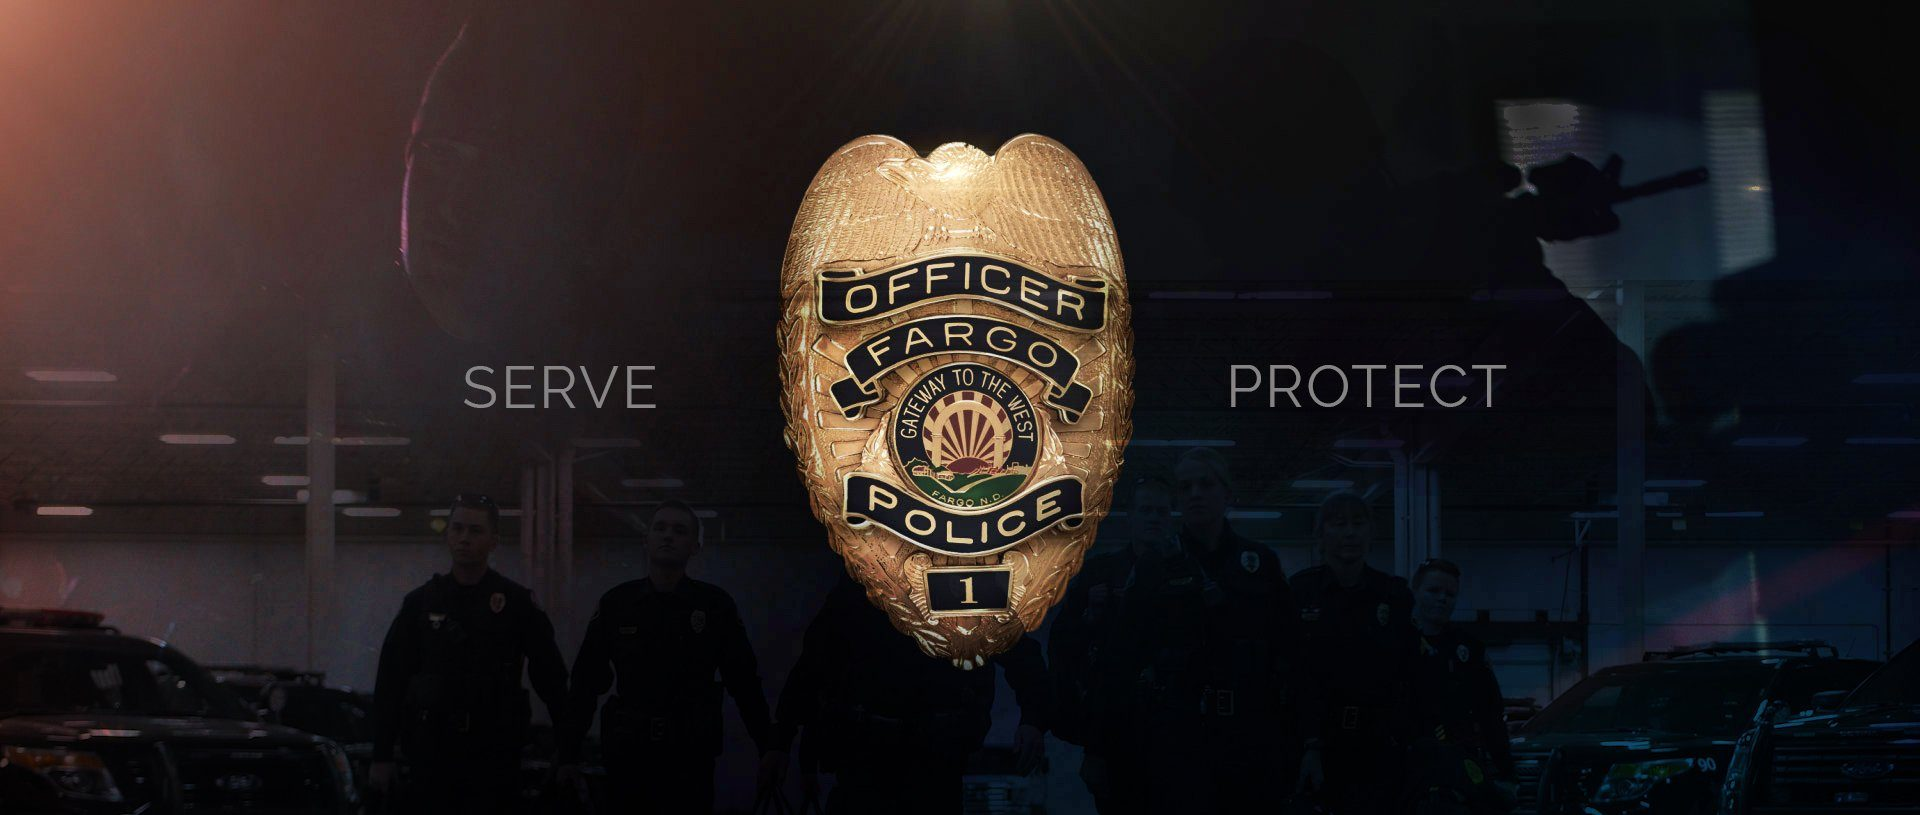 Find Your Blue Calling | Fargo Police Department